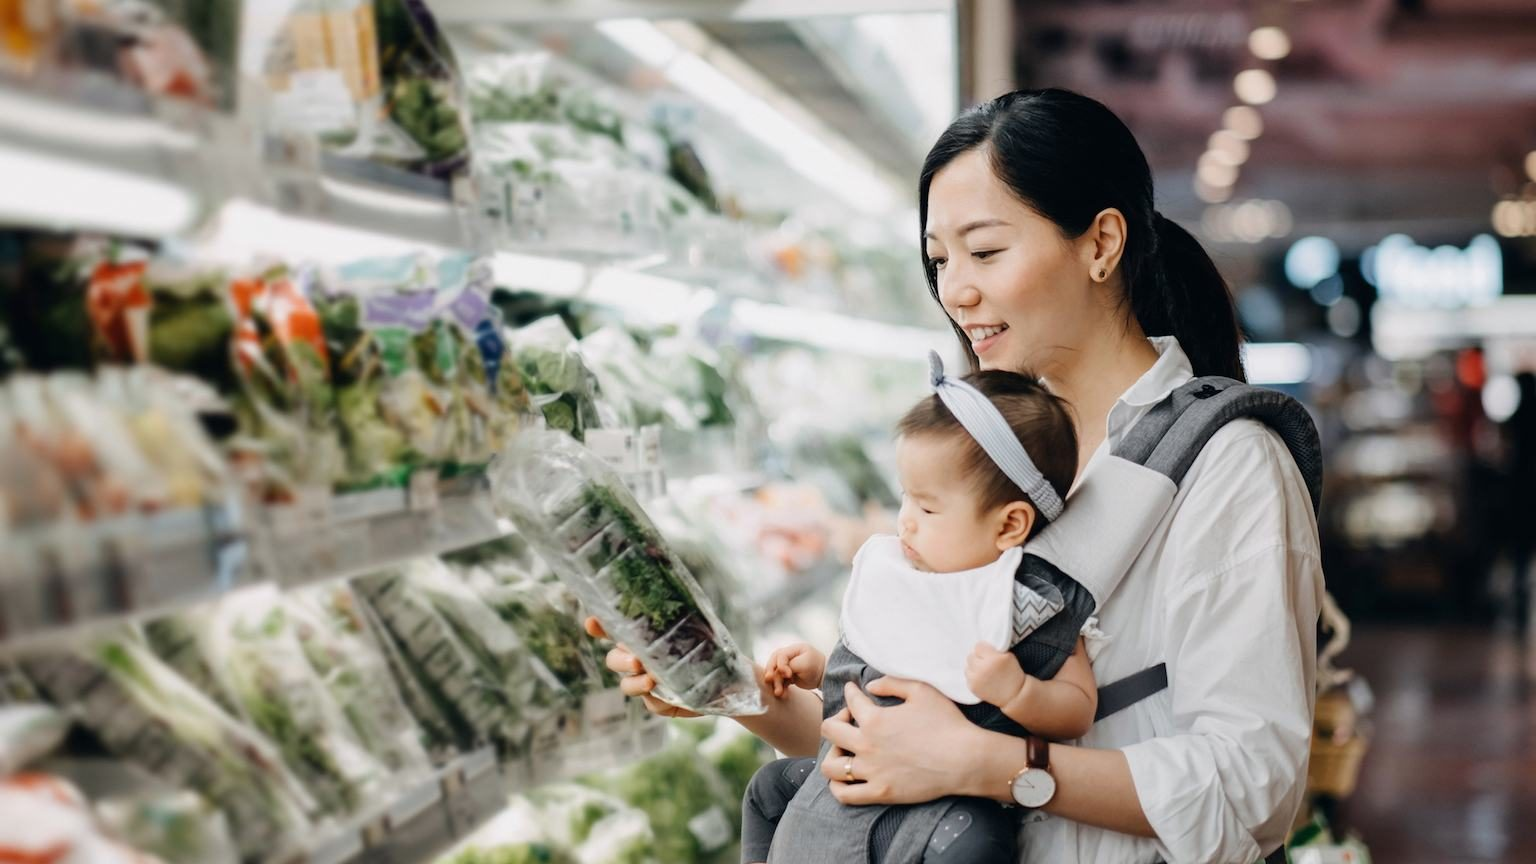 Mum with baby shopping for lettuce at supermarket.